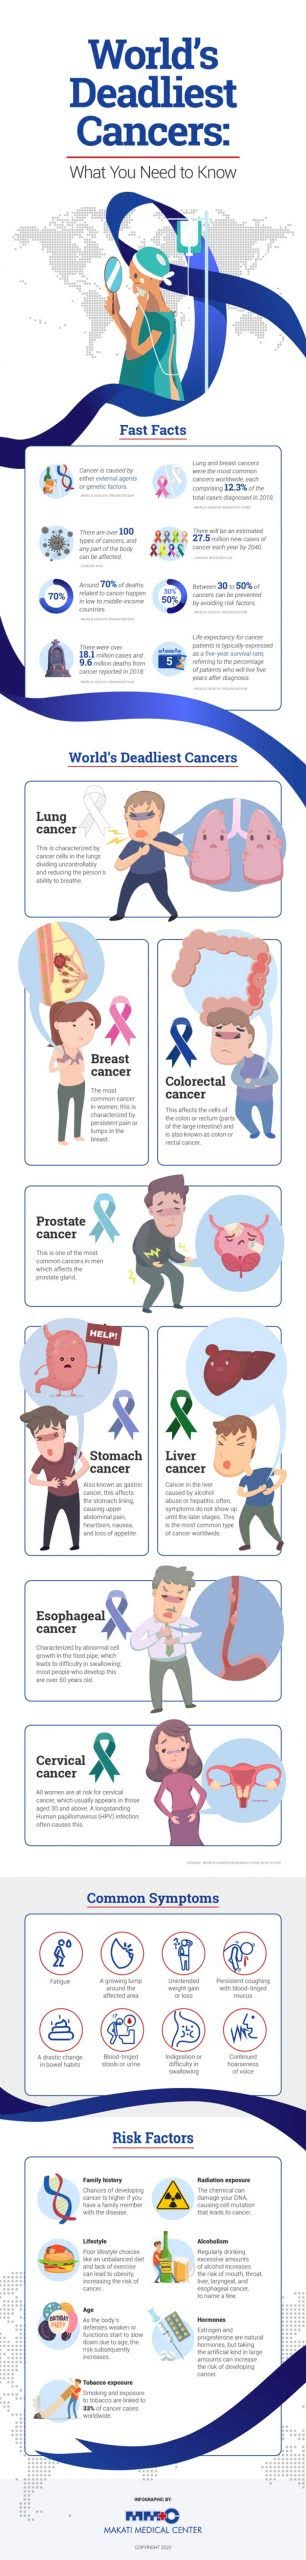 World's Deadliest Cancers: What You Need to Know #infographic